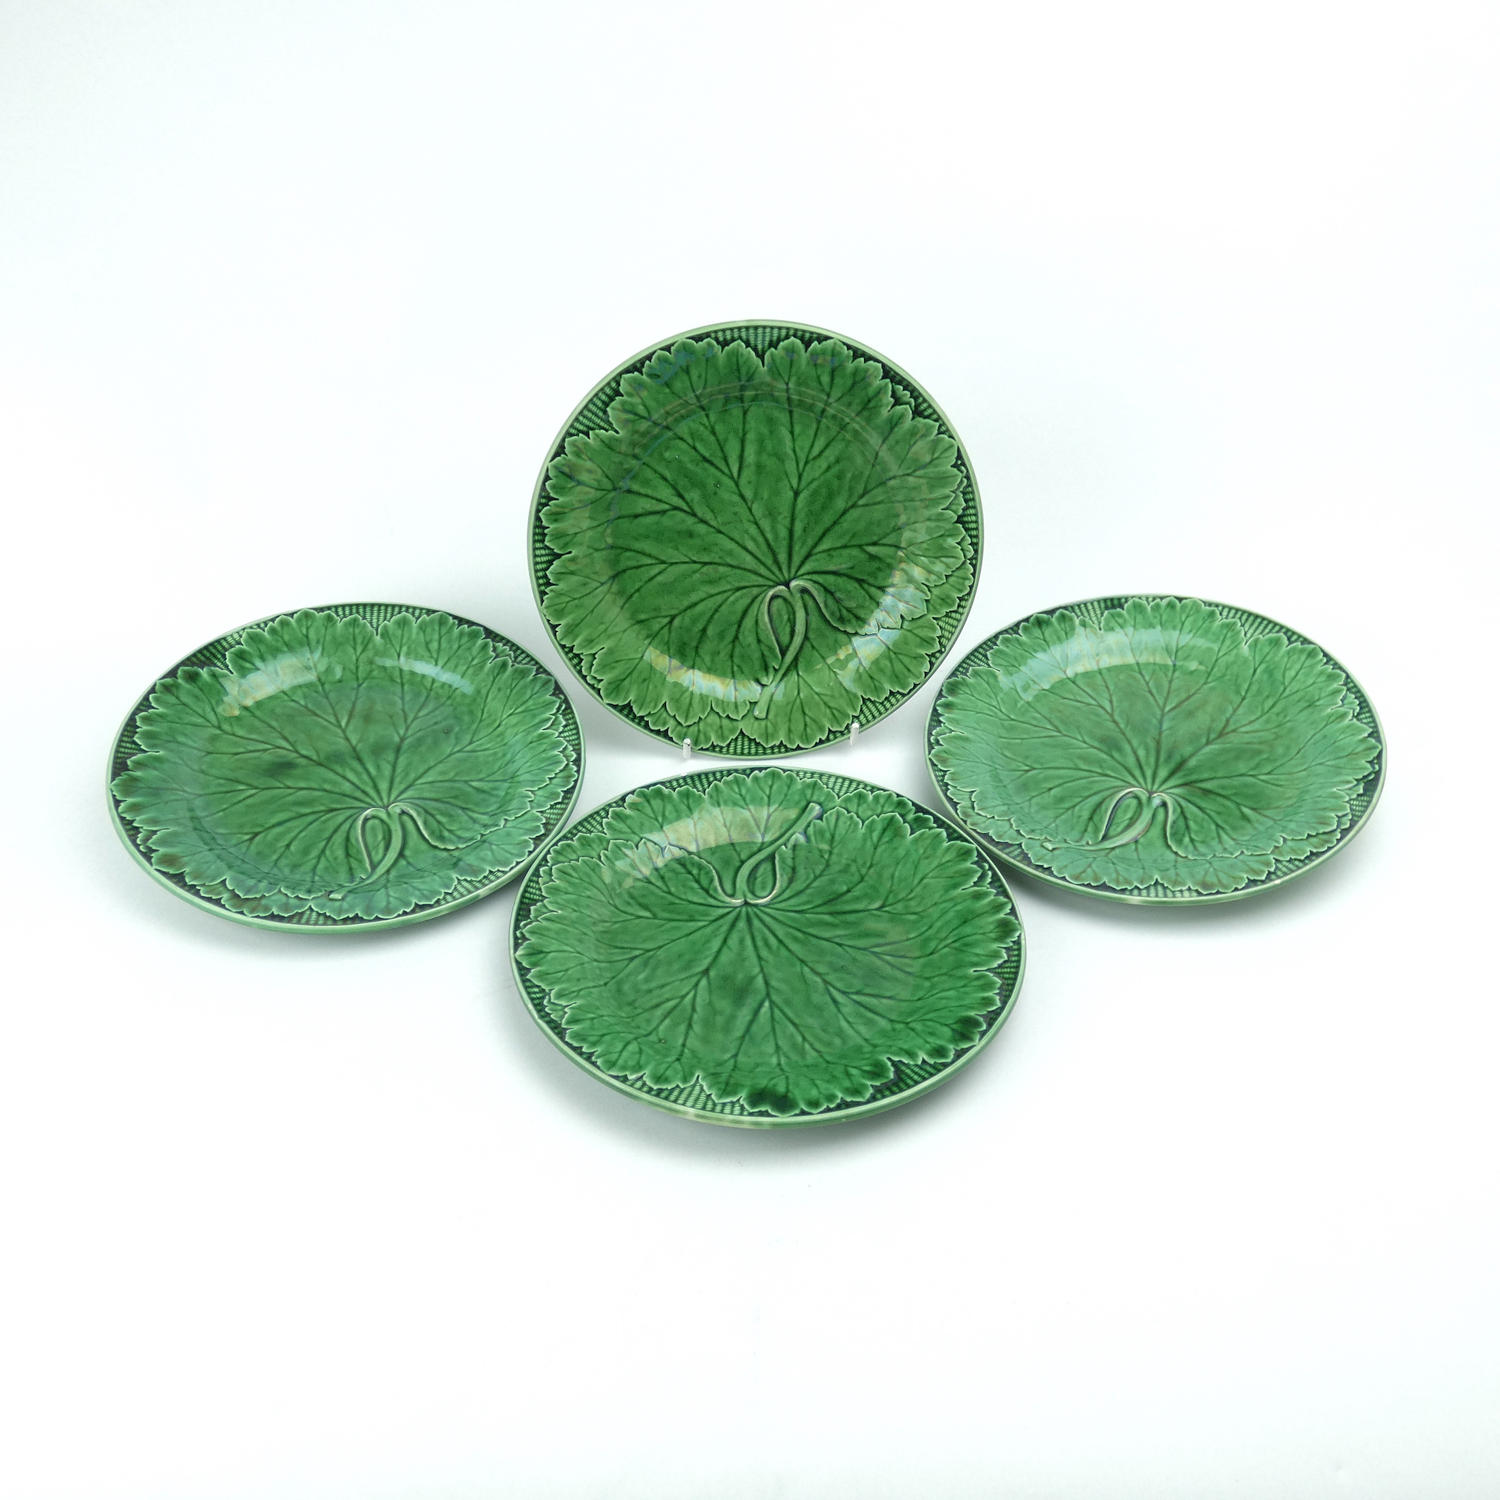 Cabbage Leaf Plates.